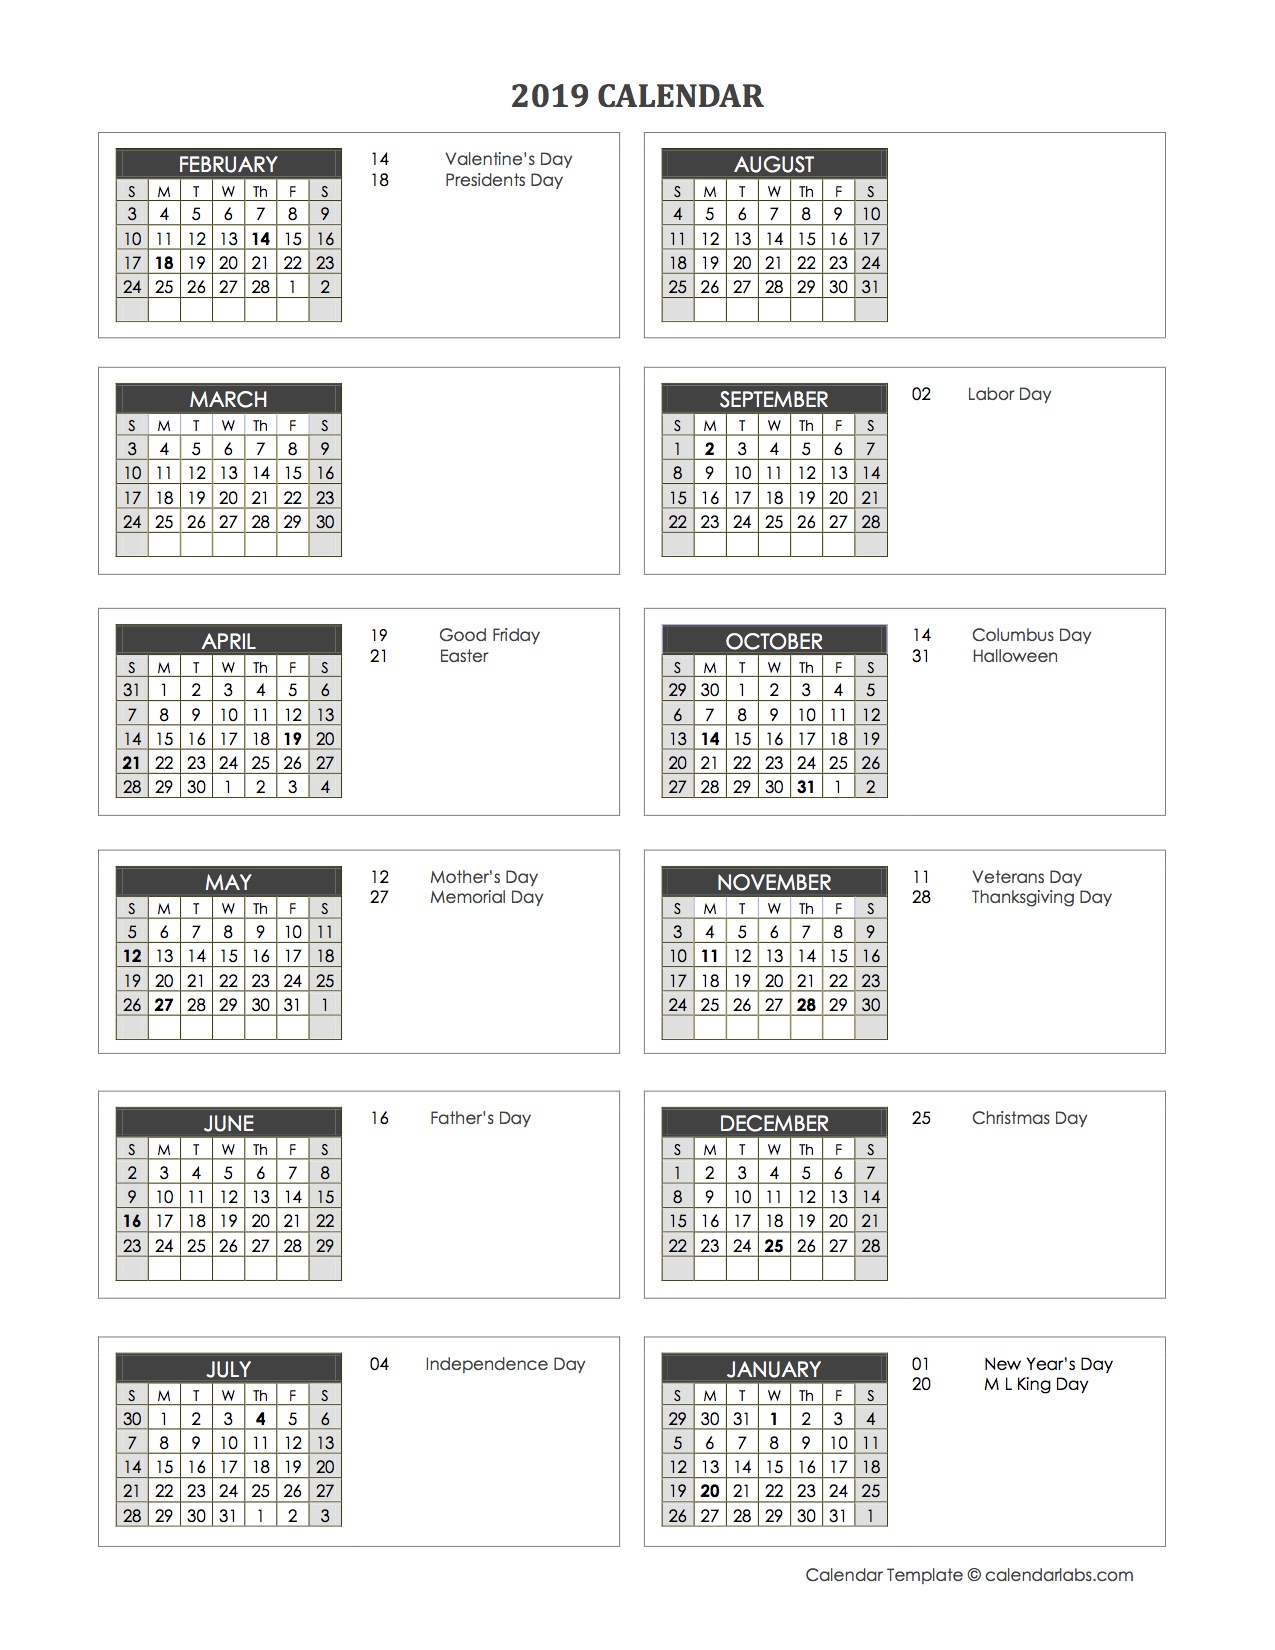 2019 accounting month end close calendar